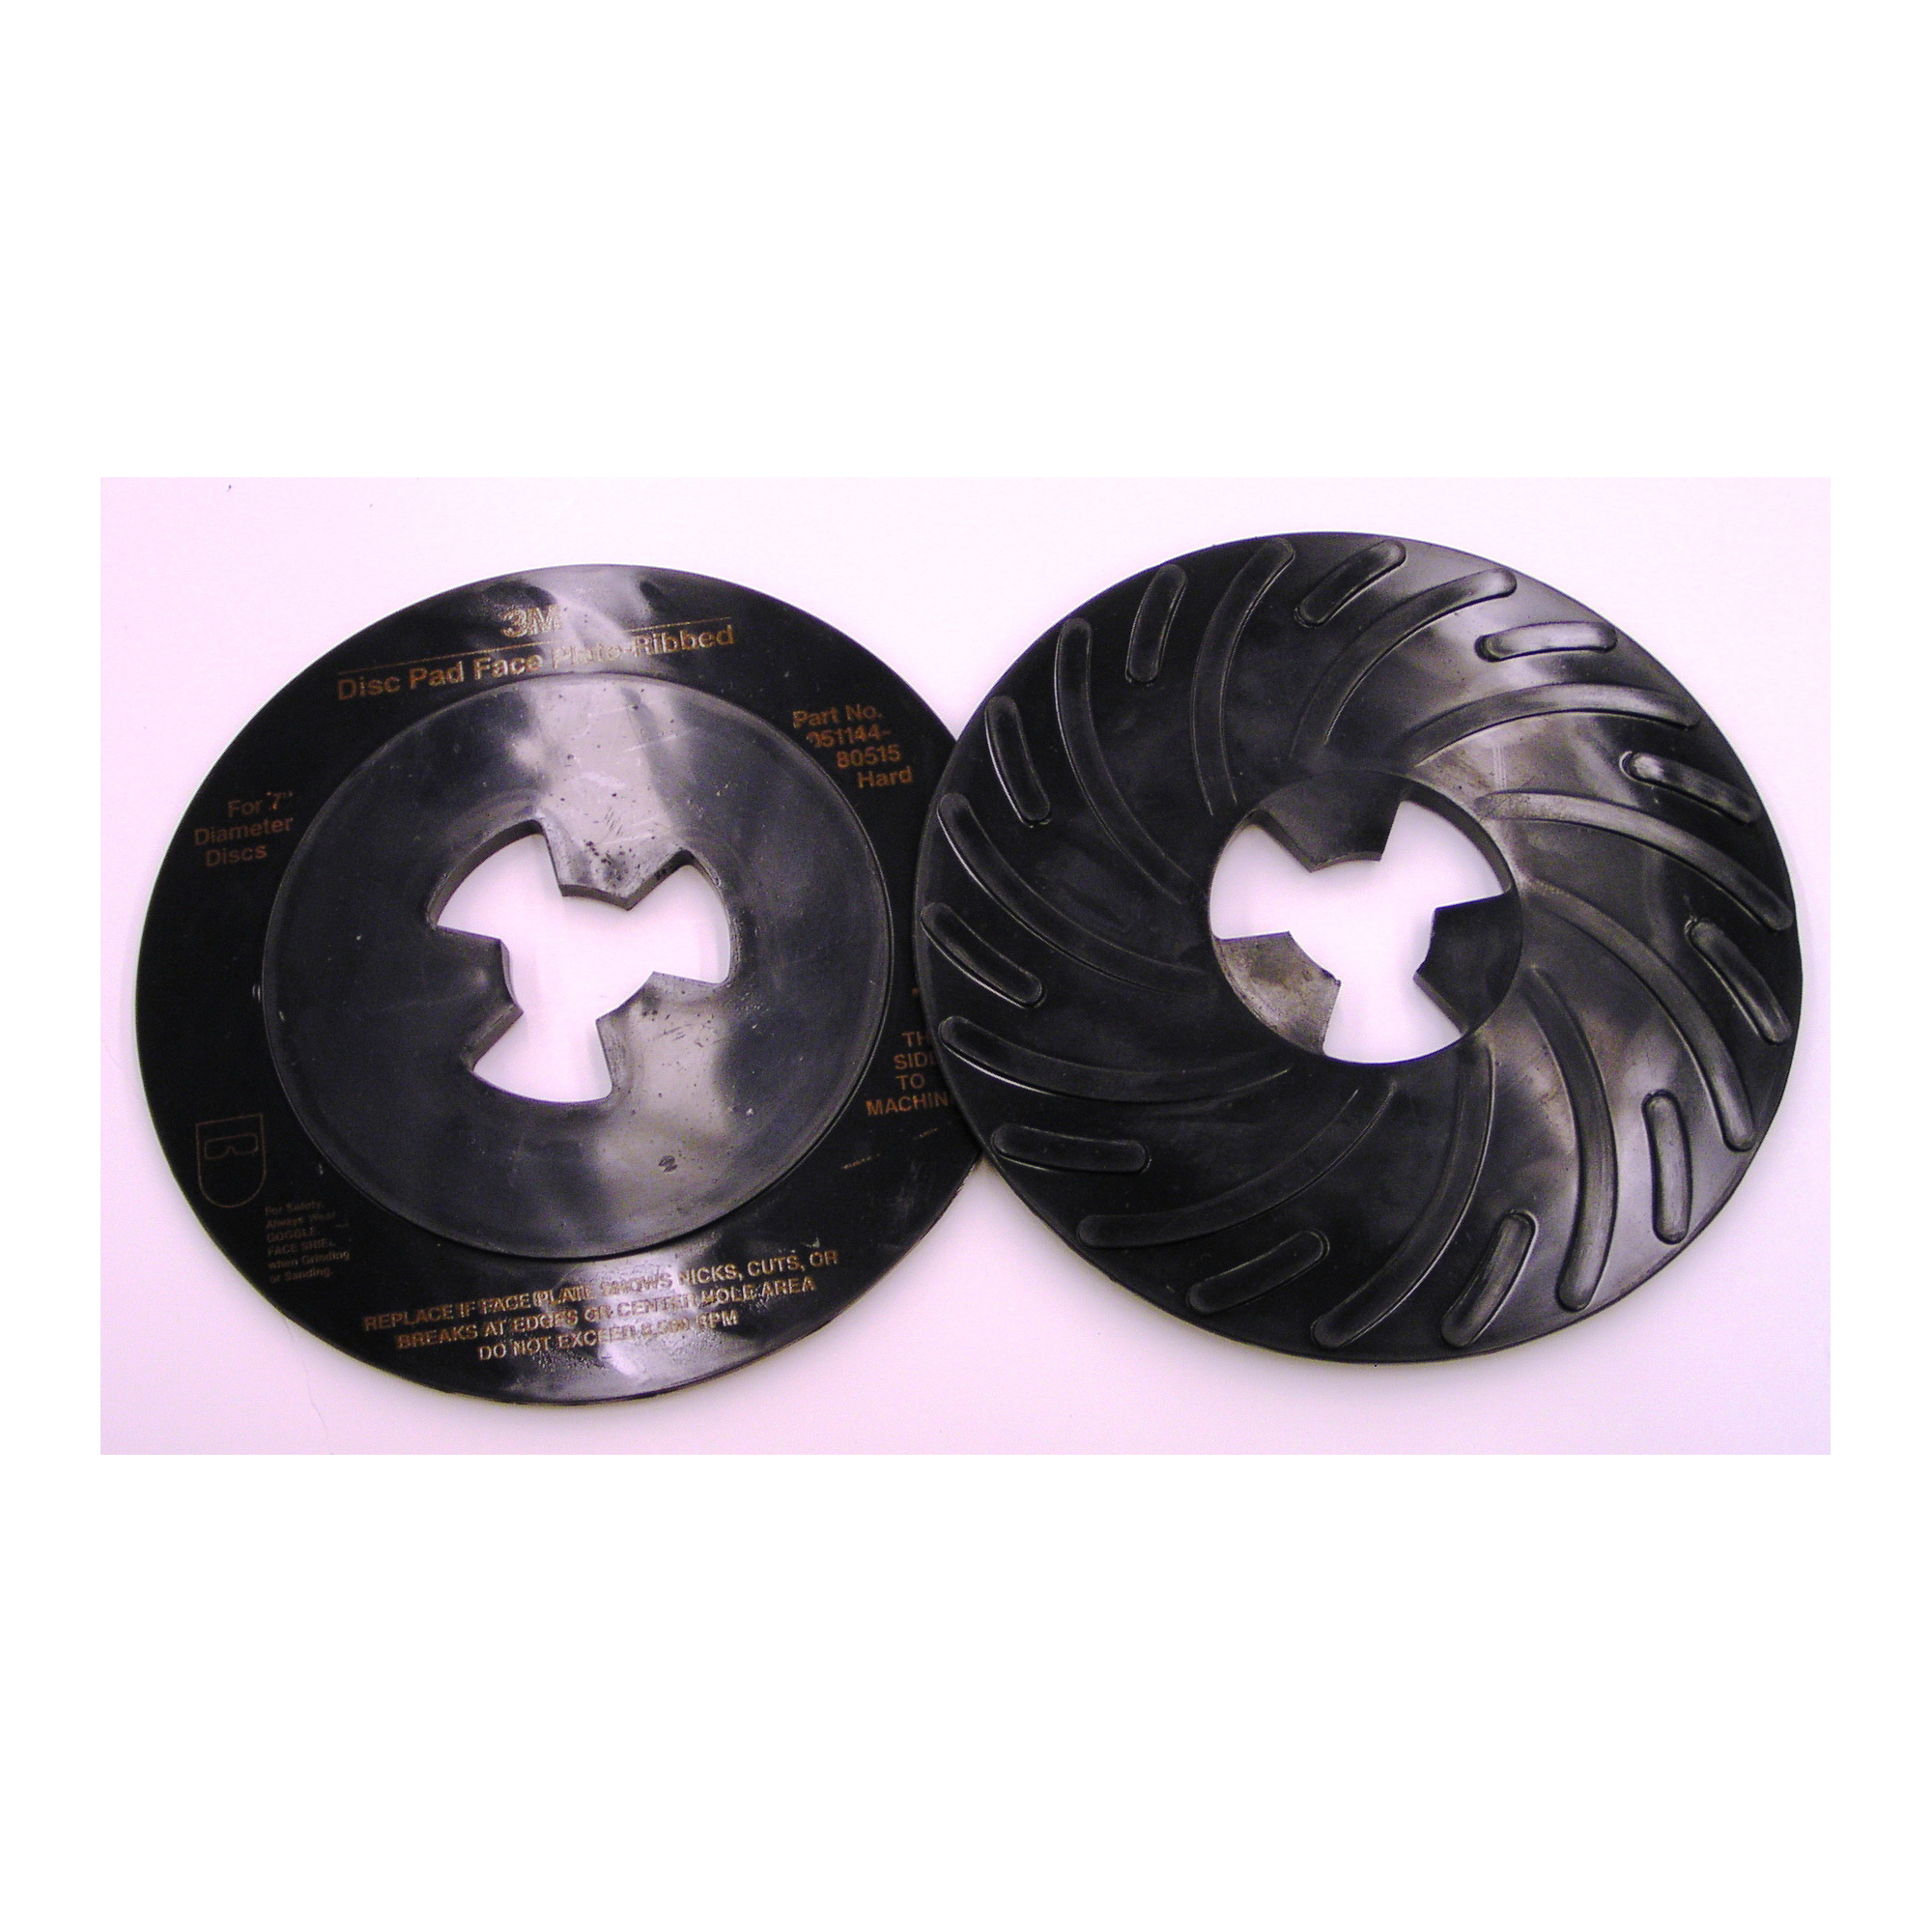 3M™ 051144-80515 Hard Density Ribbed Disc Pad Face Plate, 7 in, For Use With 3M™ Disc Pad Hub, Right Angle Grinder and Rotary Sander